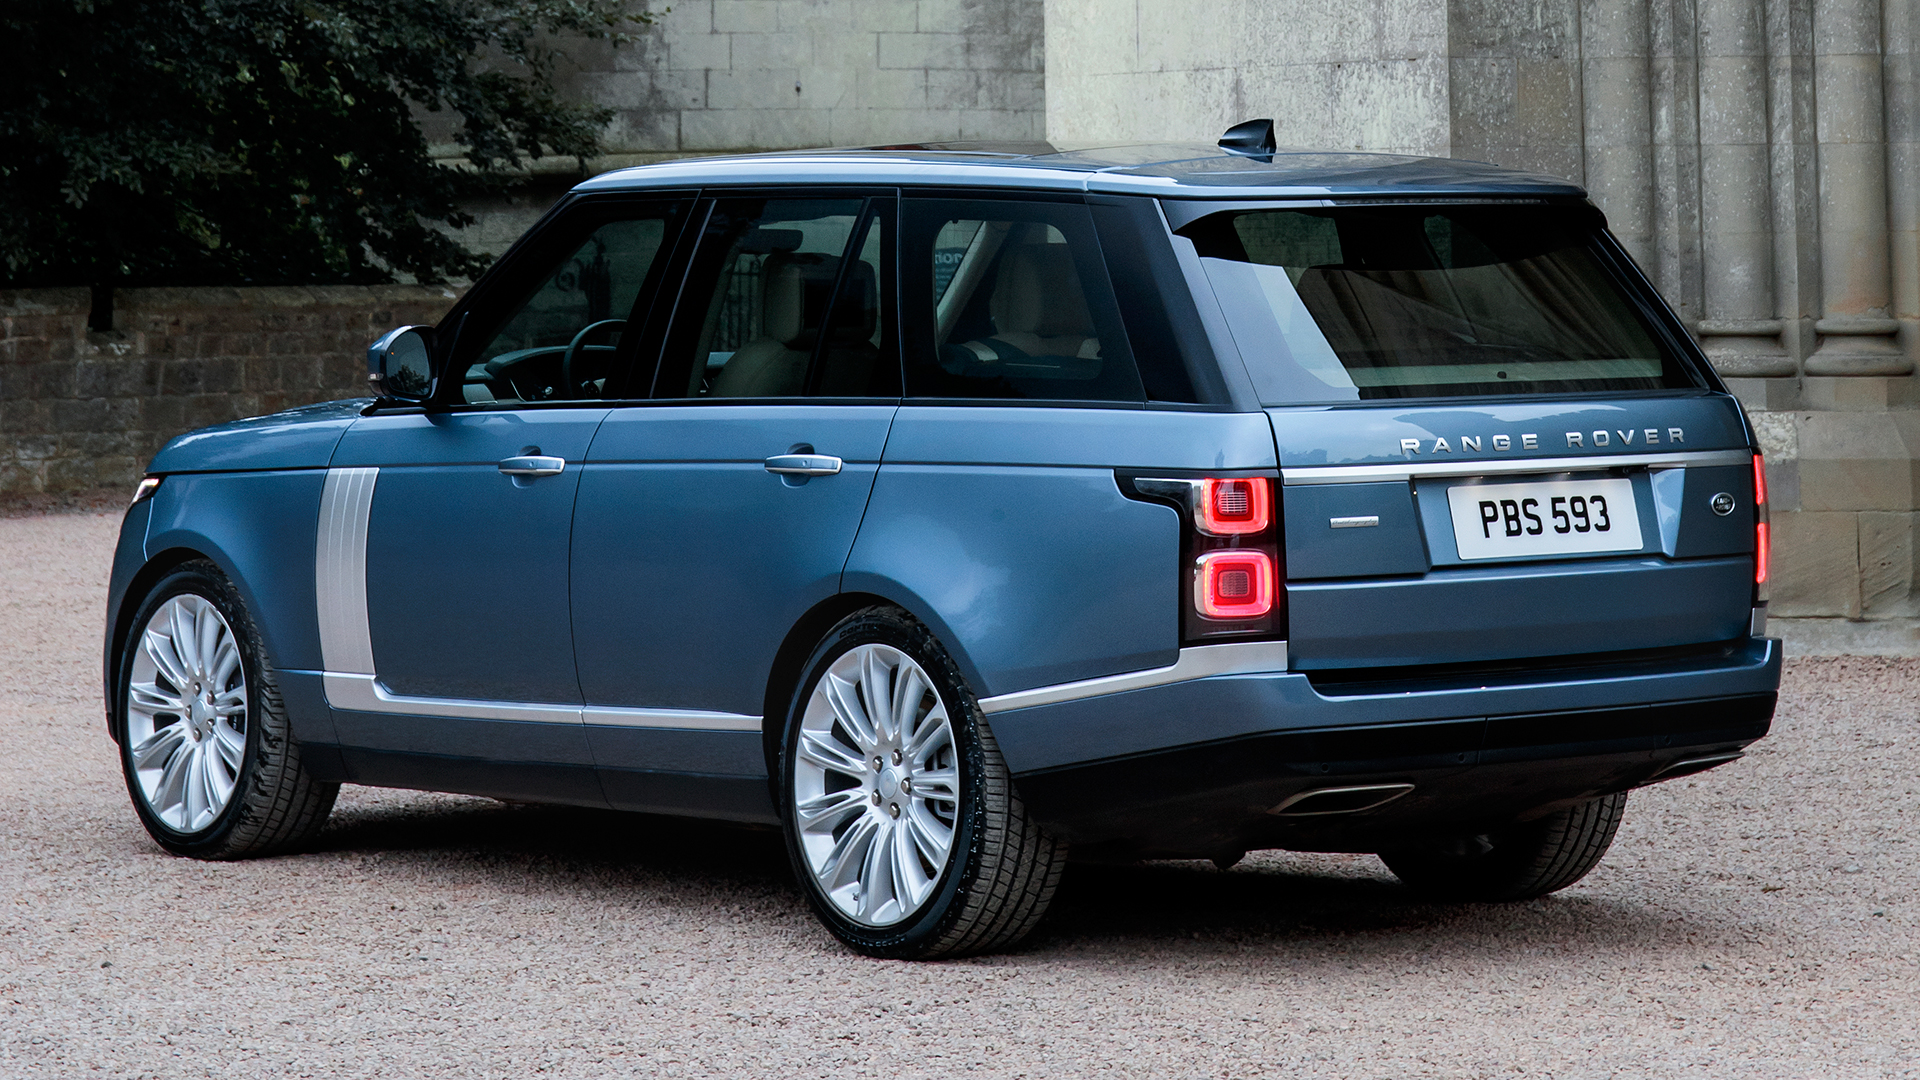 New & used Land Rover Range Rover cars for sale | Auto Trader